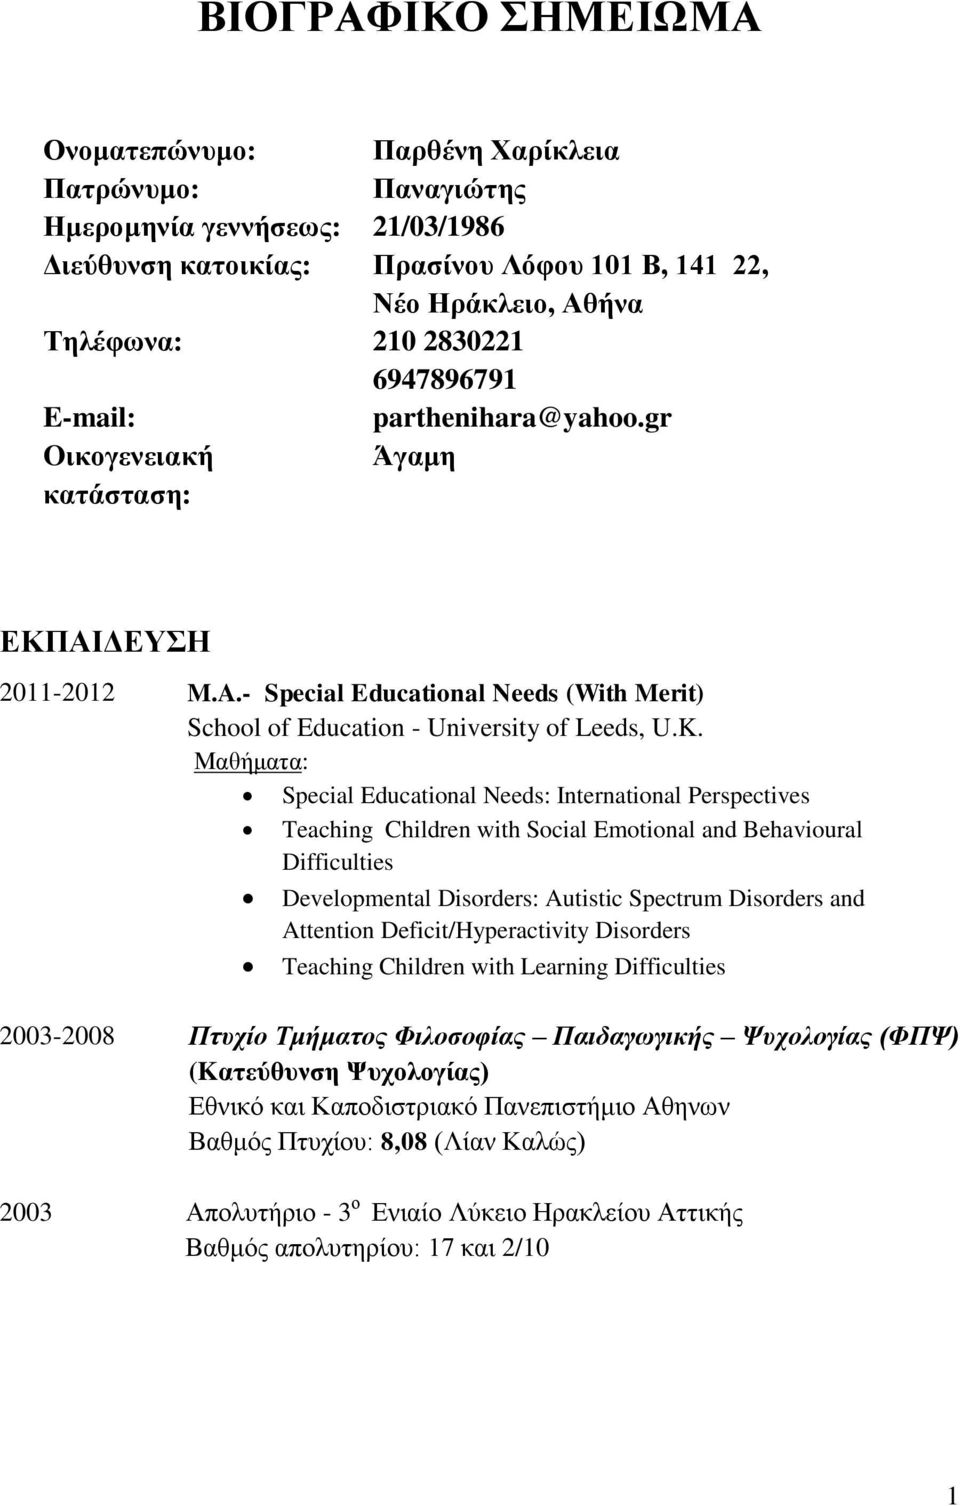 Μαθήματα: Special Educational Needs: International Perspectives Teaching Children with Social Emotional and Behavioural Difficulties Developmental Disorders: Autistic Spectrum Disorders and Attention